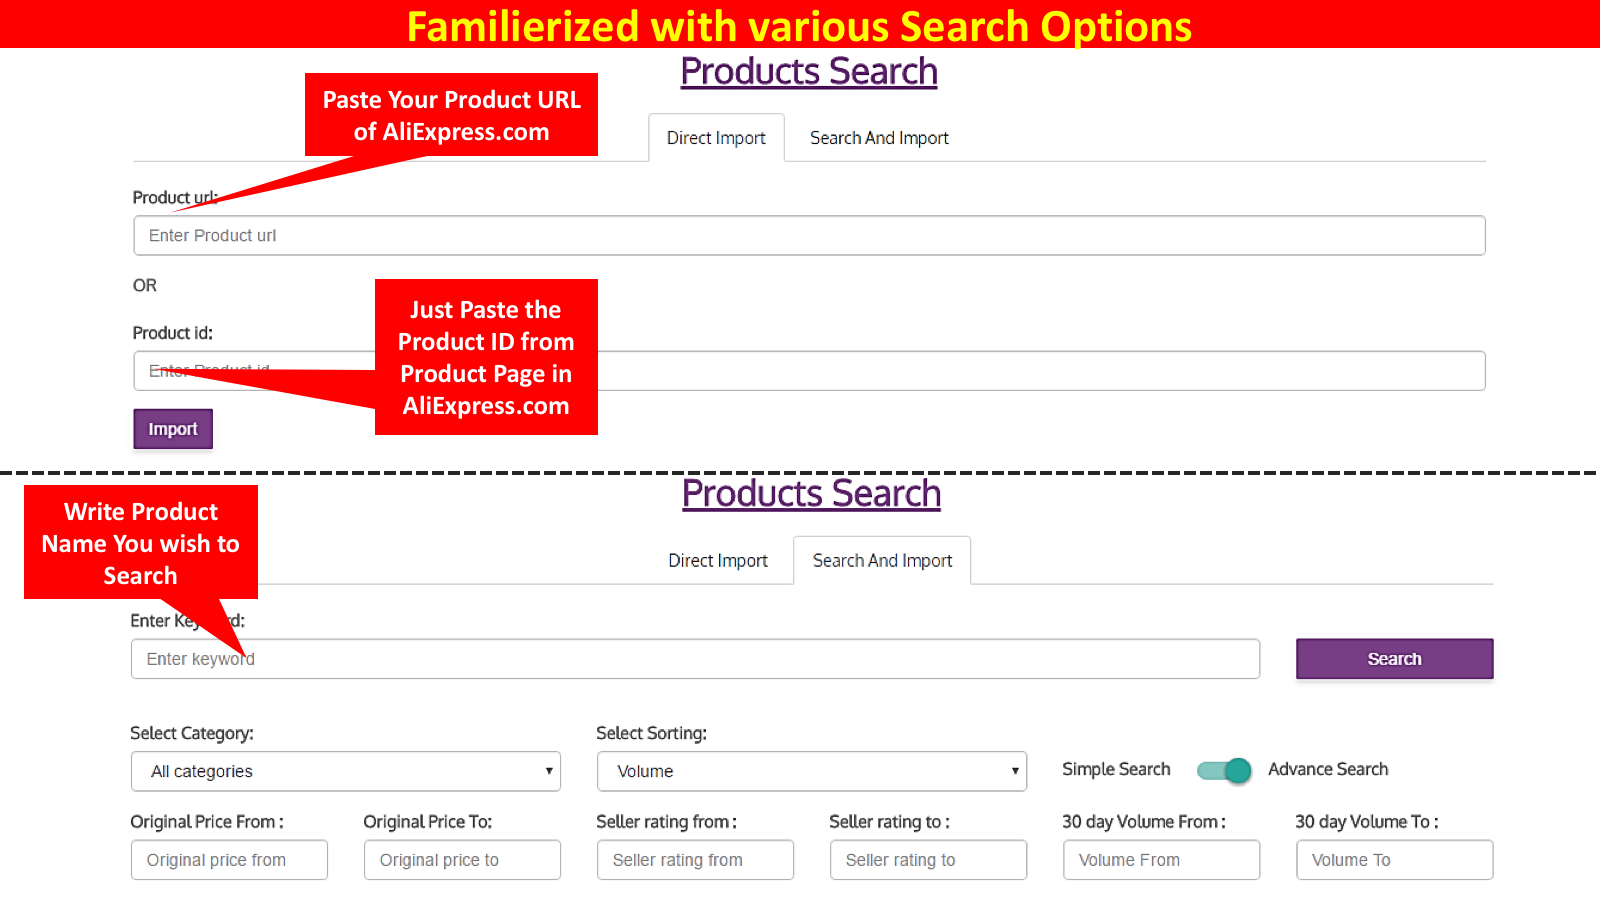 Familiarise with Search Options